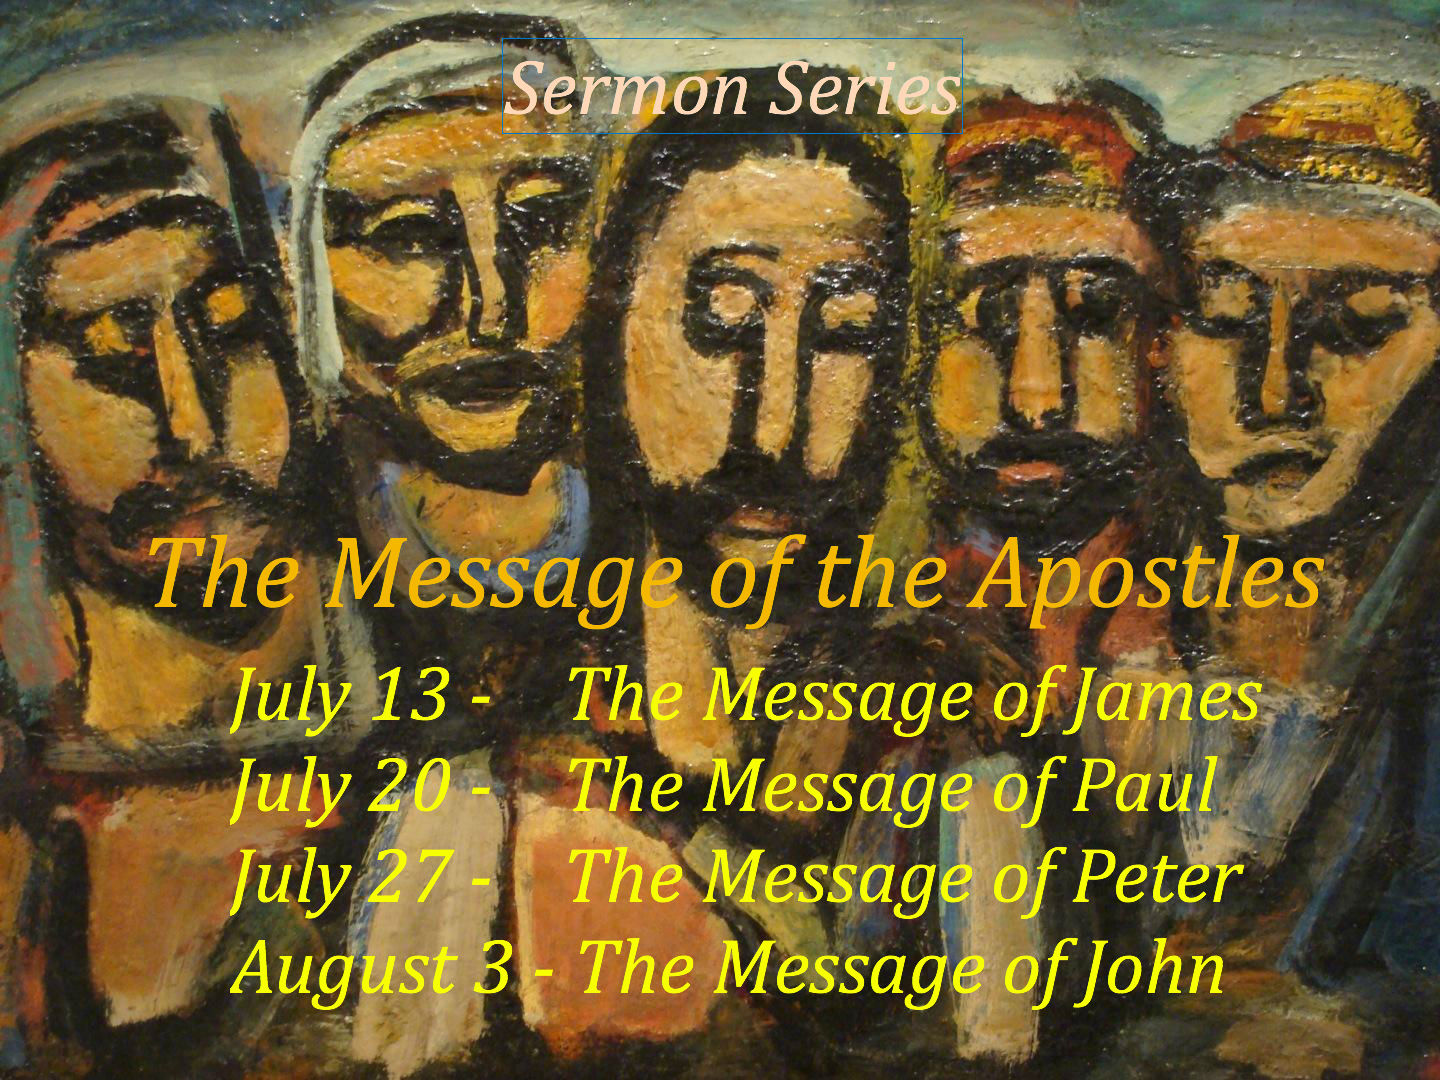 Click here for the series on The Message of the Apostles